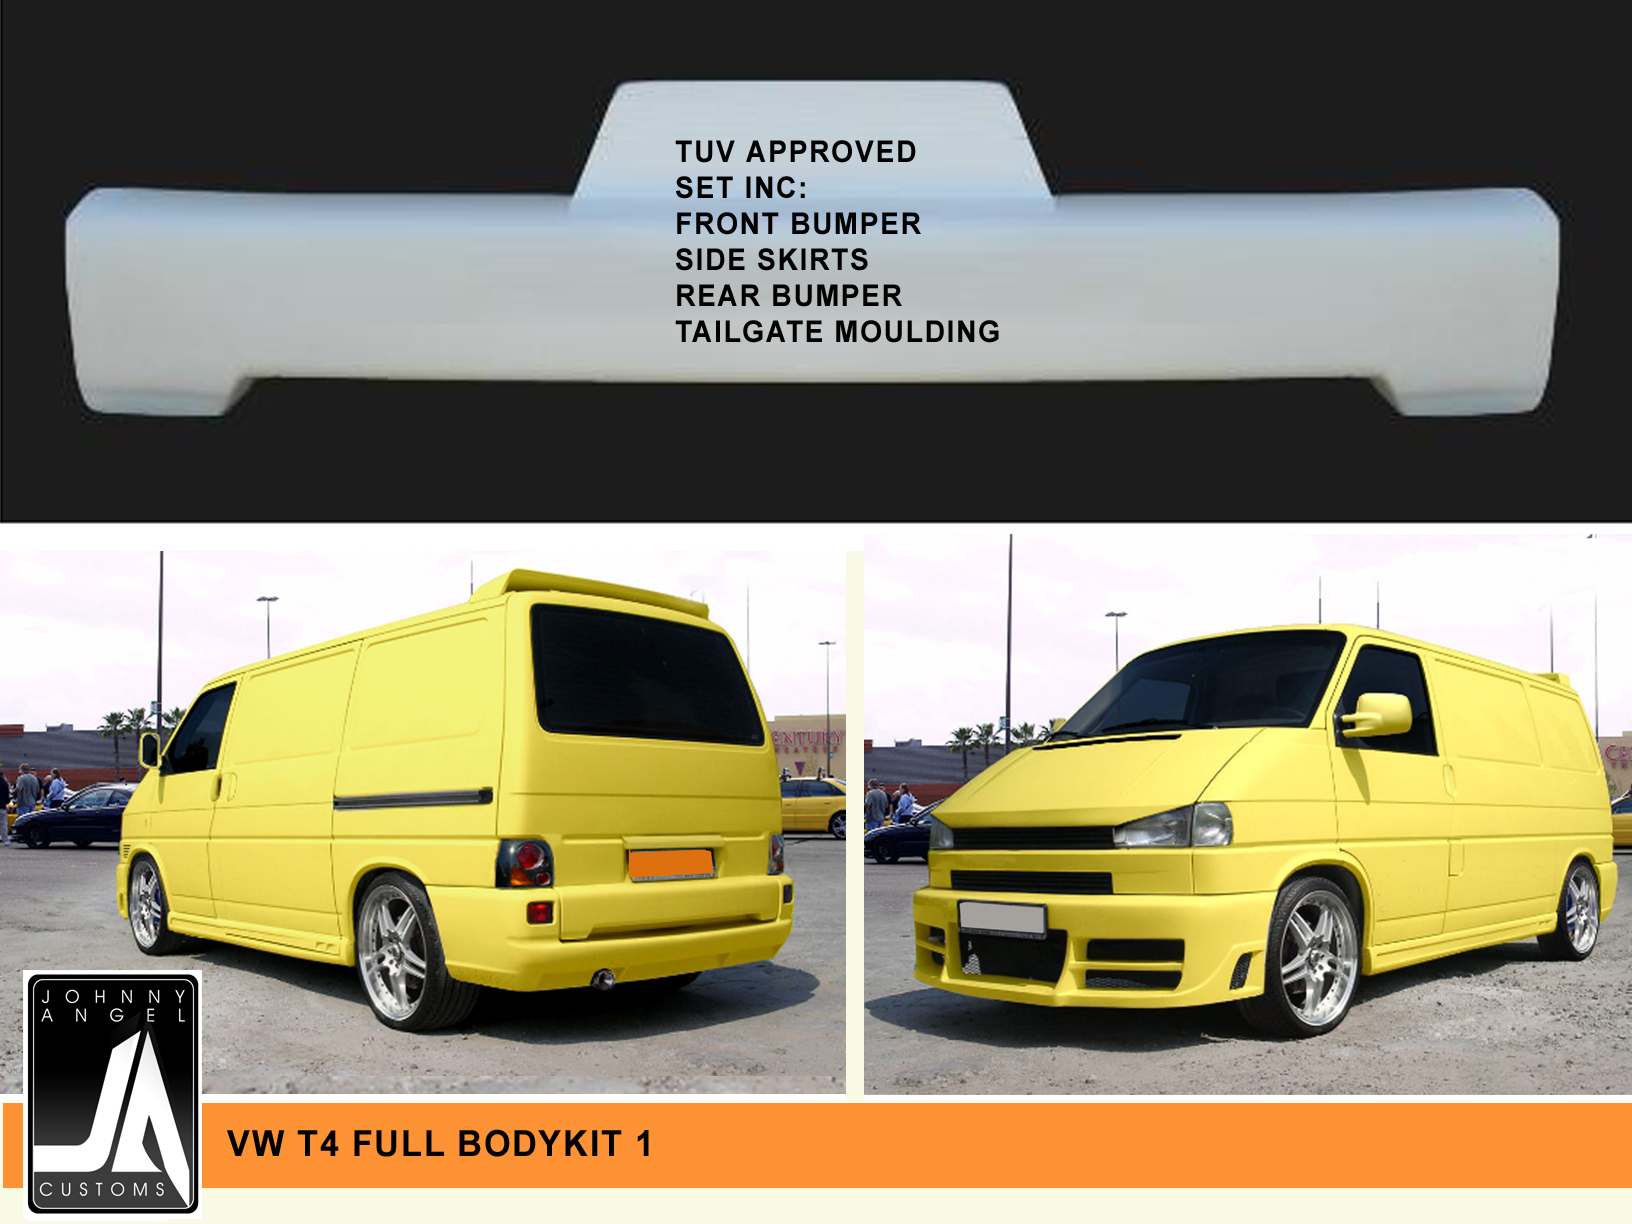 VW T4 FULL BODYKIT 1  Johnny Angel Customs pic 3